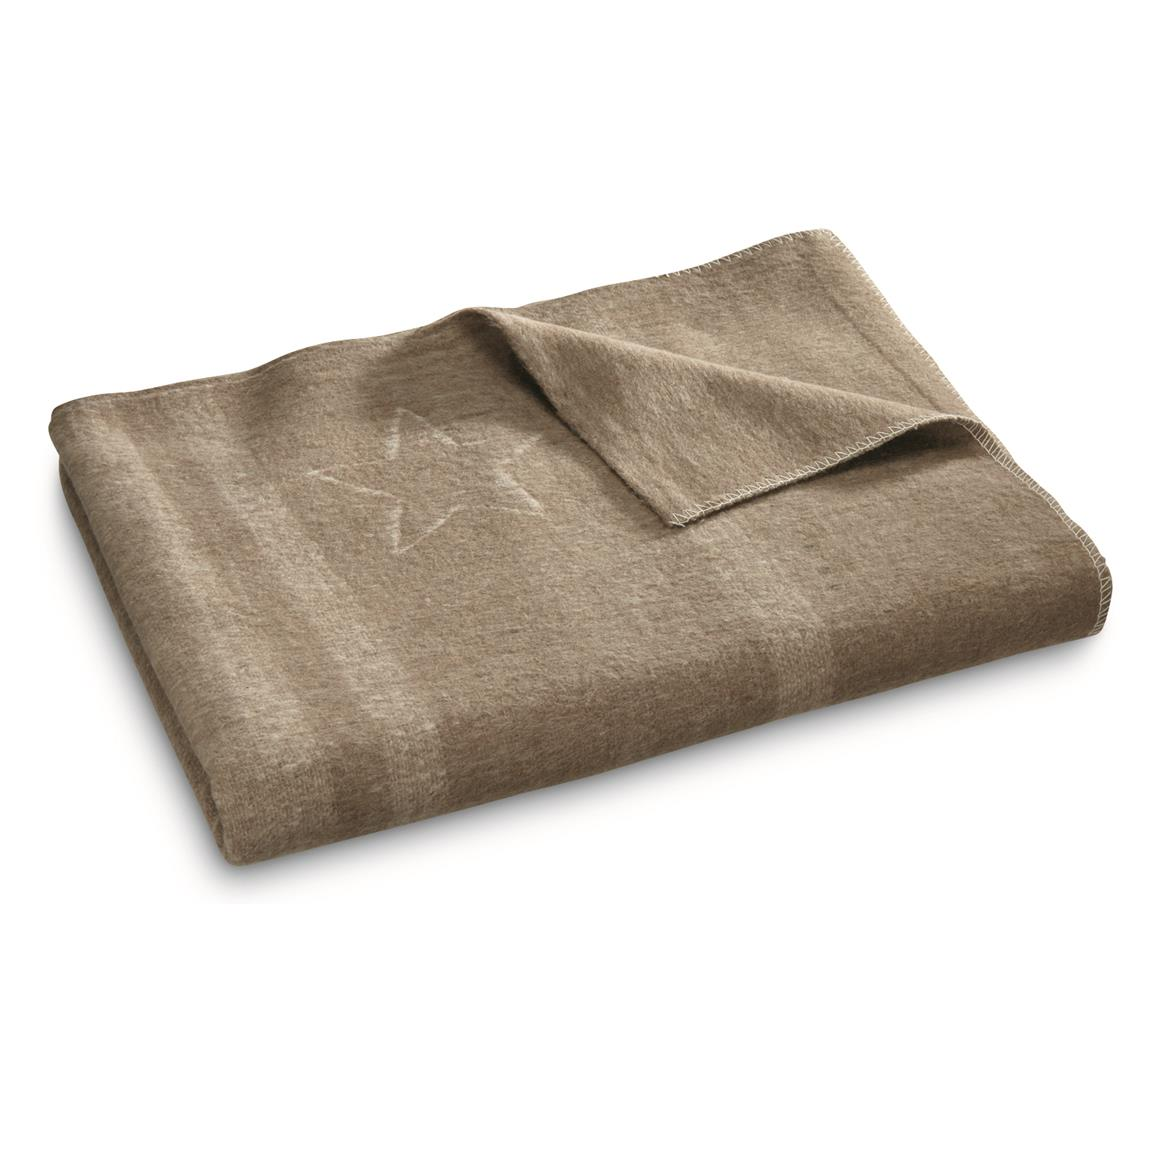 Military Style Italian Officer's Blanket